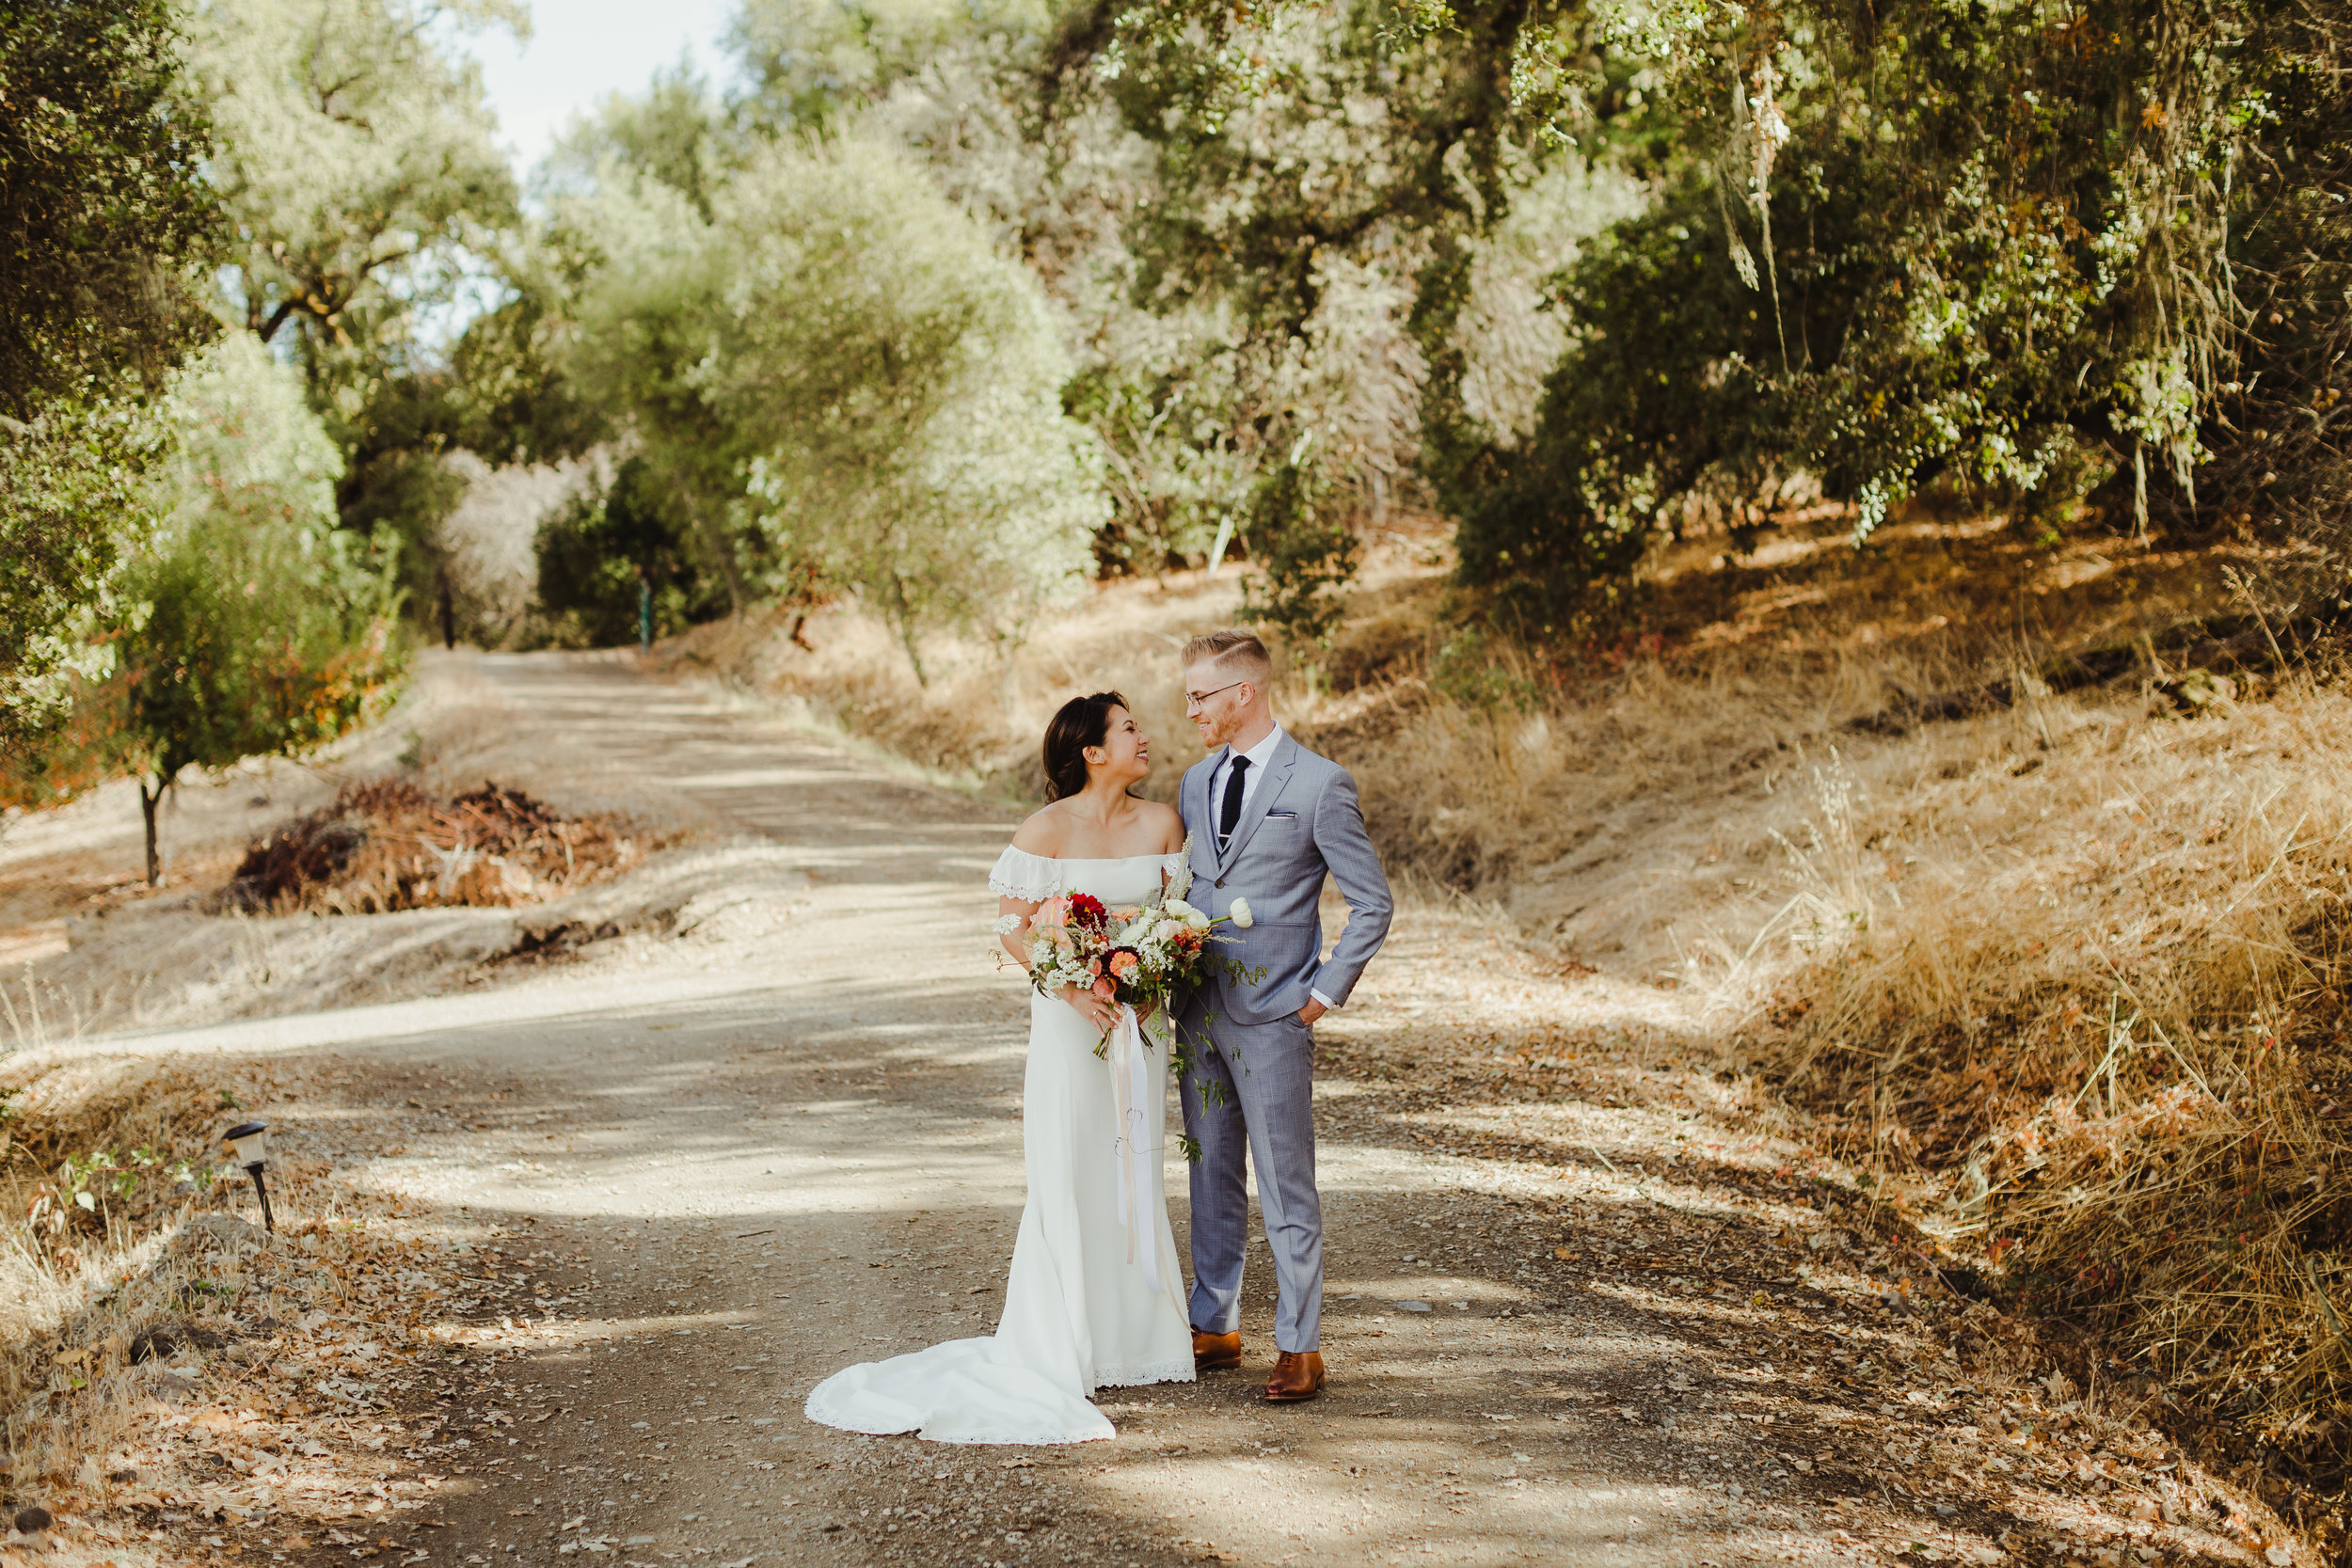 Handcrafted+and+Colorful+Wedding+at+The+Highland+Estate+in+Cloverdale,+California+Photographed+by+Hannah+Costello.jpeg